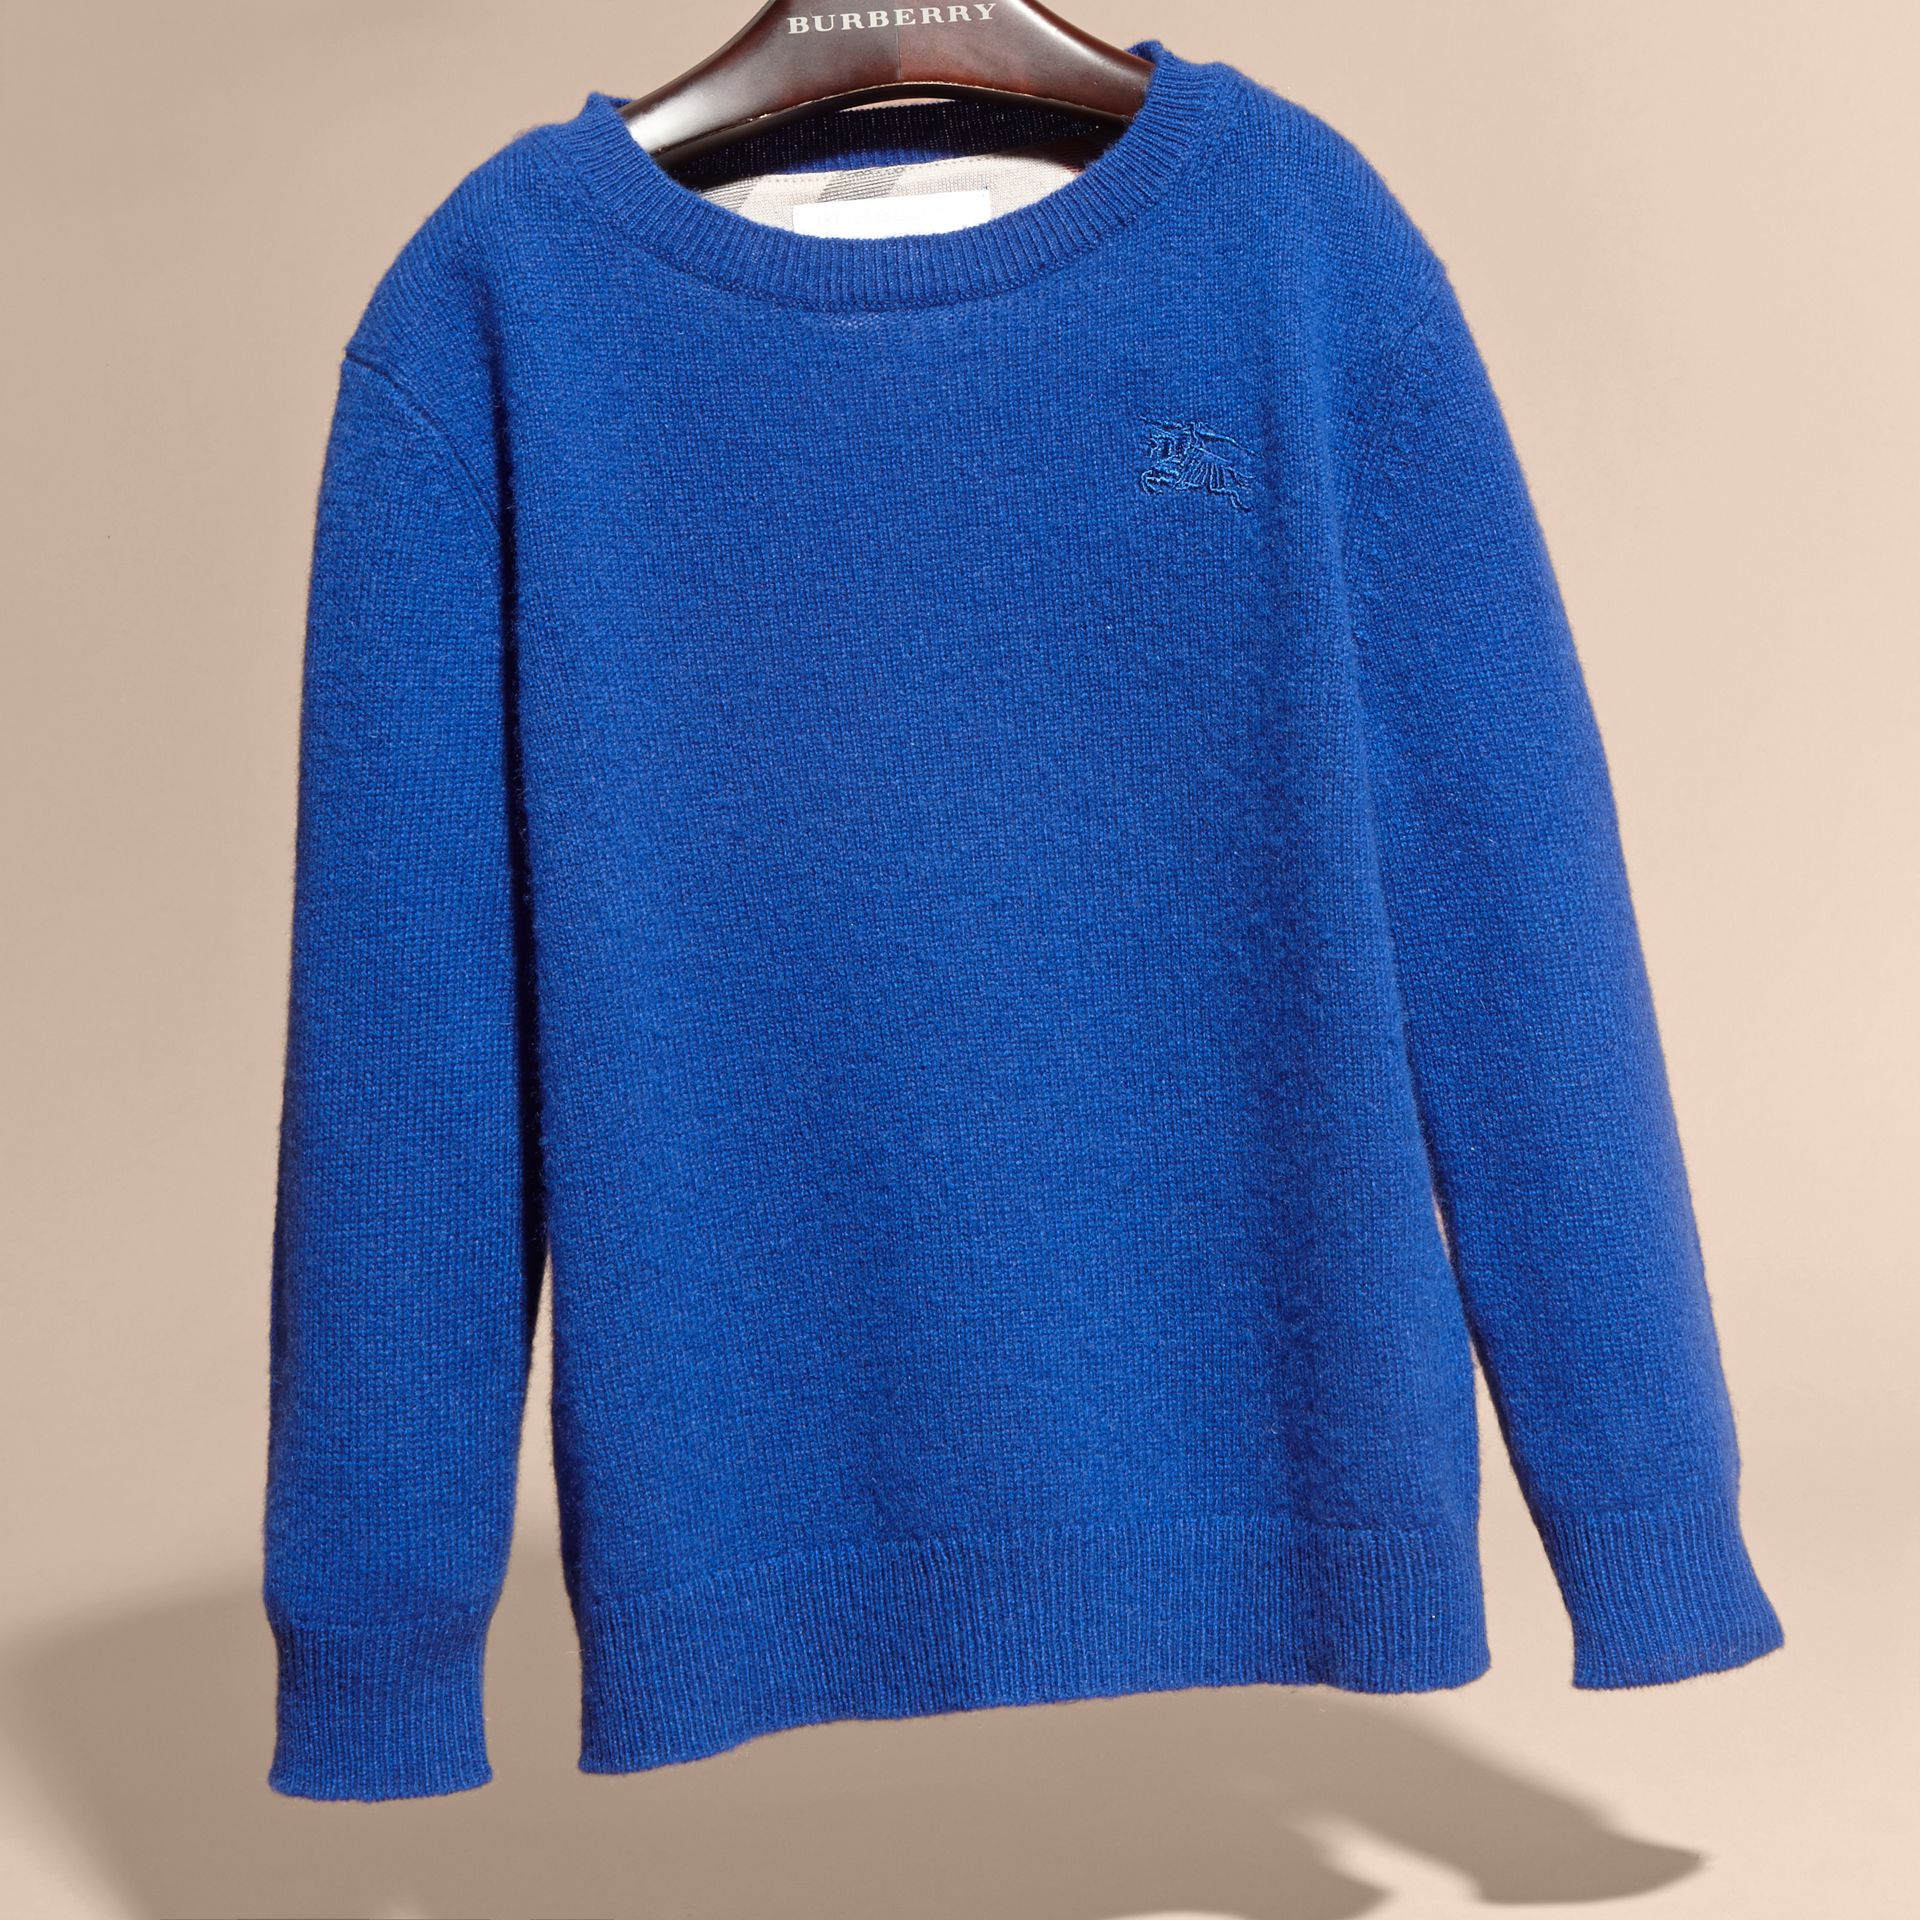 Brilliant blue Check Elbow Patch Cashmere Sweater Brilliant Blue - gallery image 4